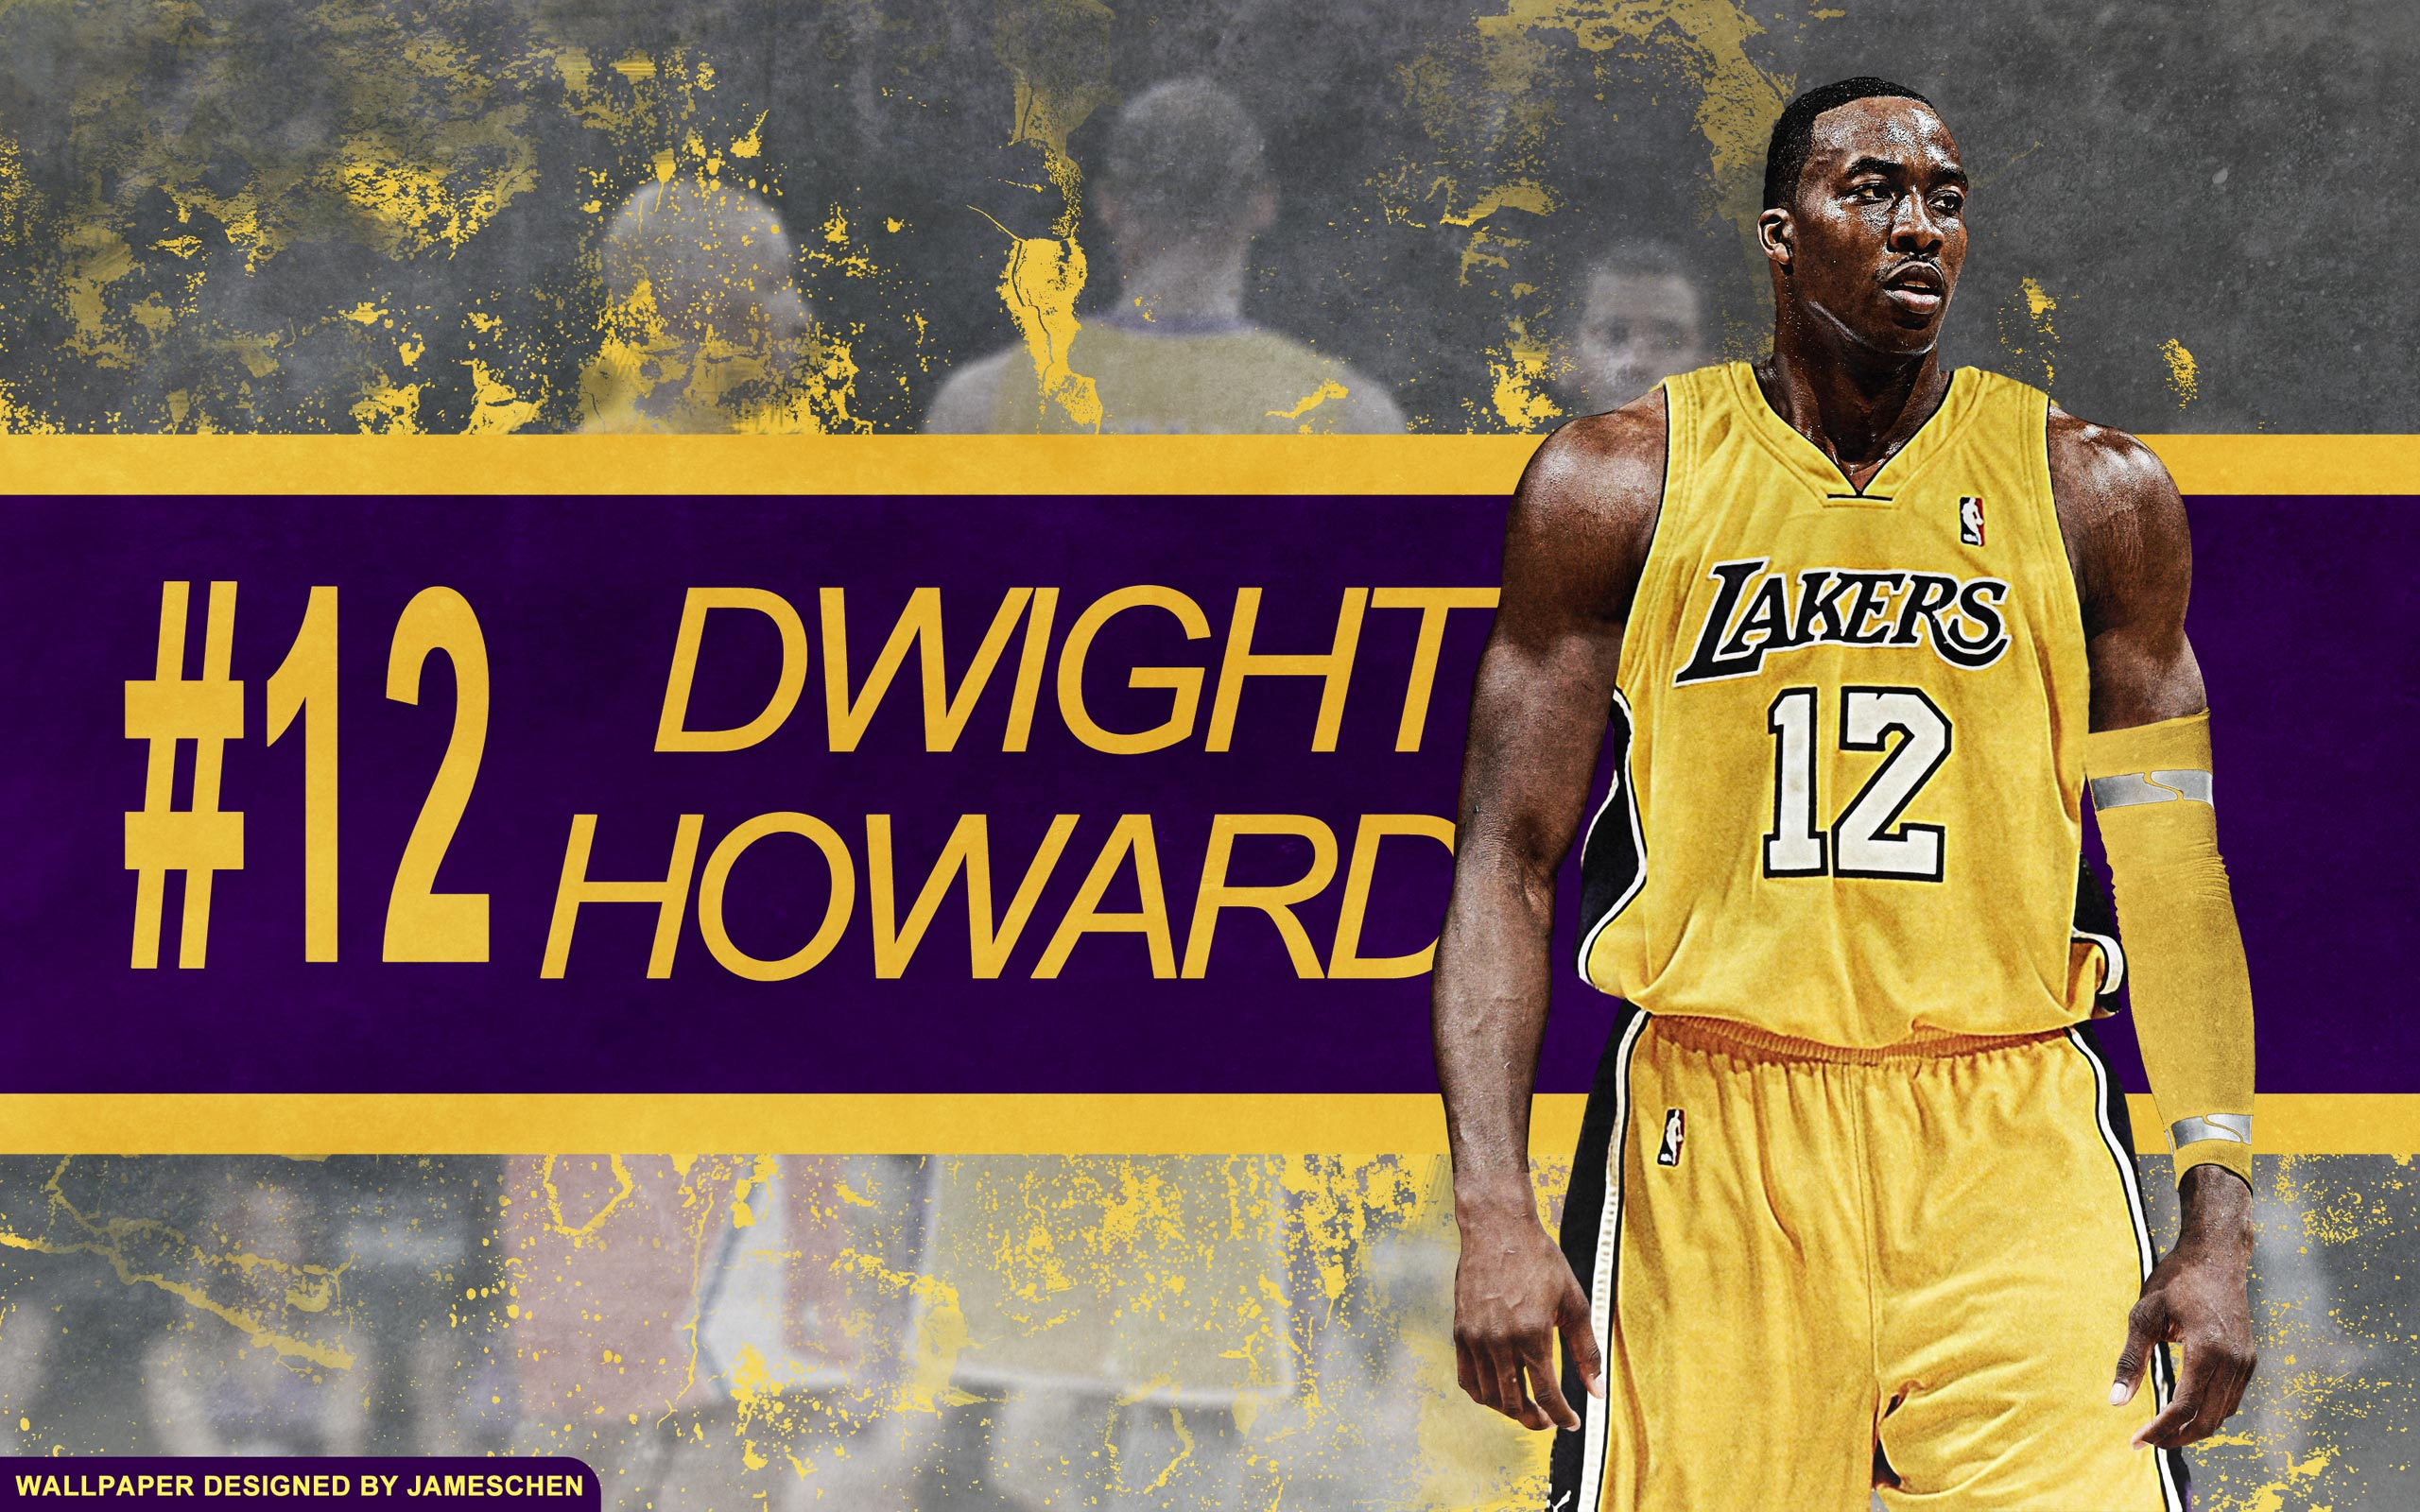 http://www.basketwallpapers.com/Images-11/Dwight-Howard-LA-Lakers-2560x1600-Wallpaper-BasketWallpapers.com-.jpg